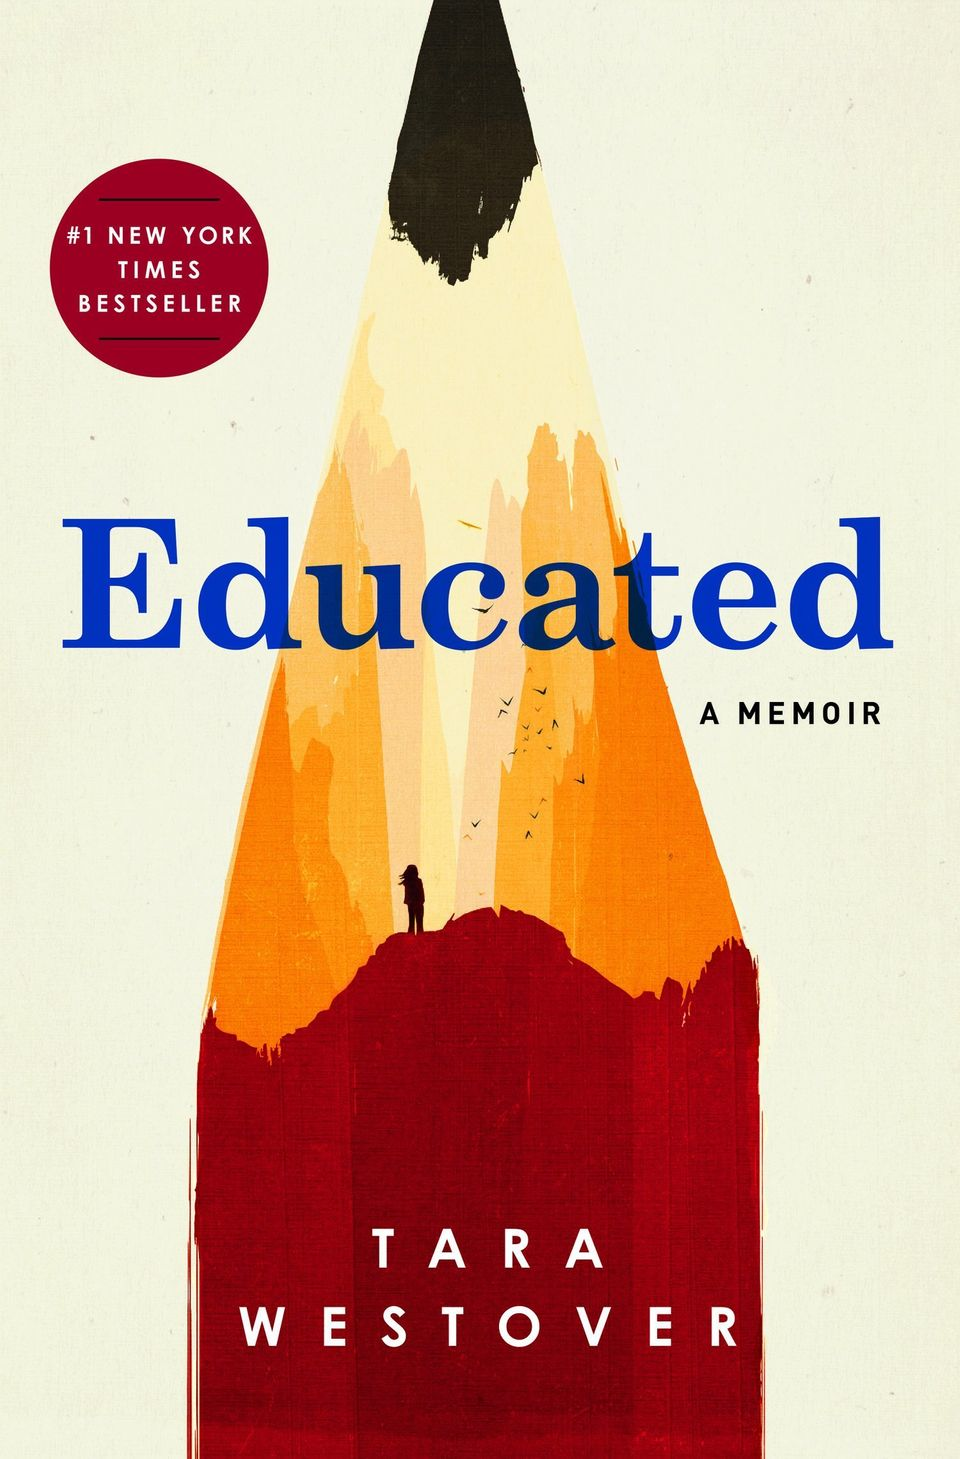 Tara Westover grew up in a conservative, Mormon family without schooling and ultimately graduated...